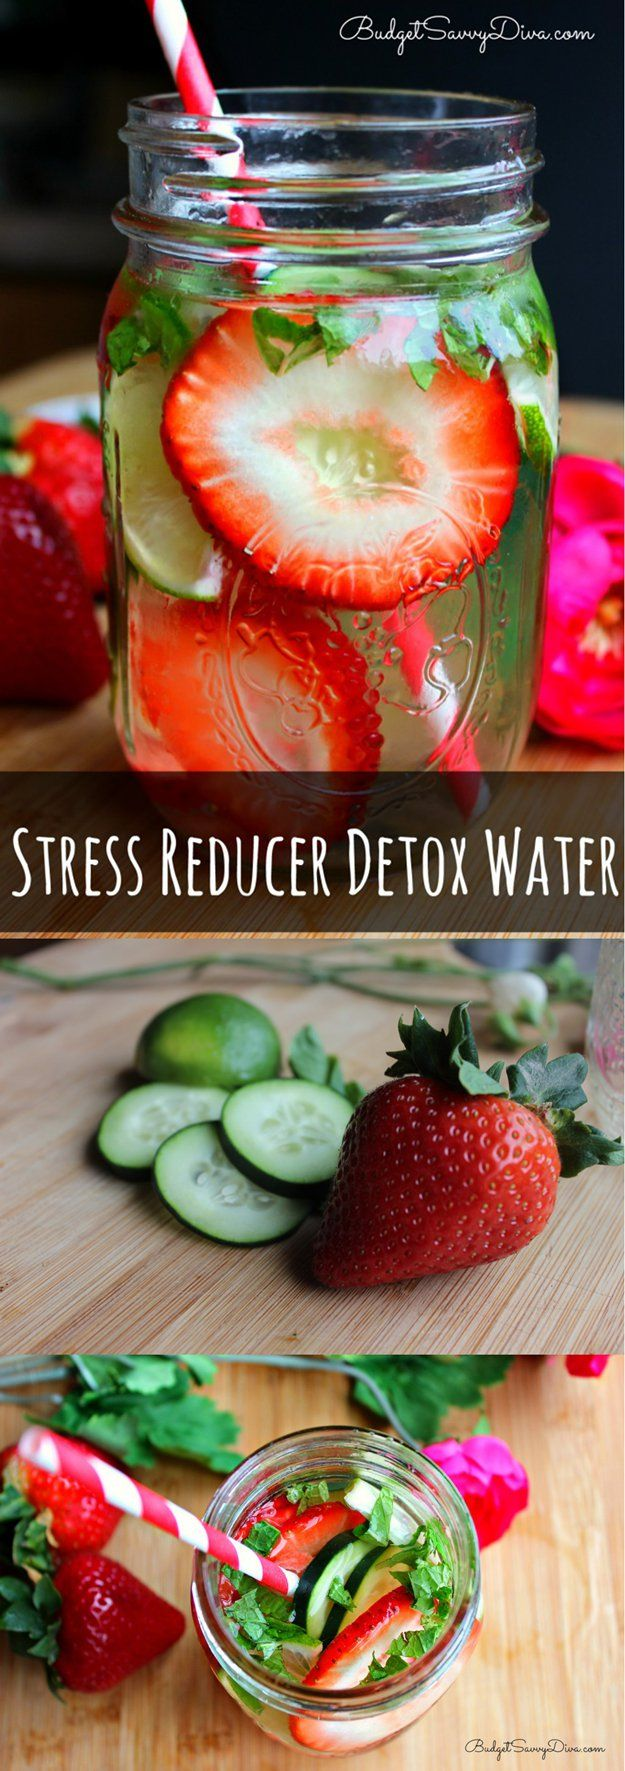 DIY Detox with These Easy To Make Refreshing Detox Waters DIYReady.com | Easy DIY Crafts, Fun Projects, & DIY Craft Ideas For Kids & Adults